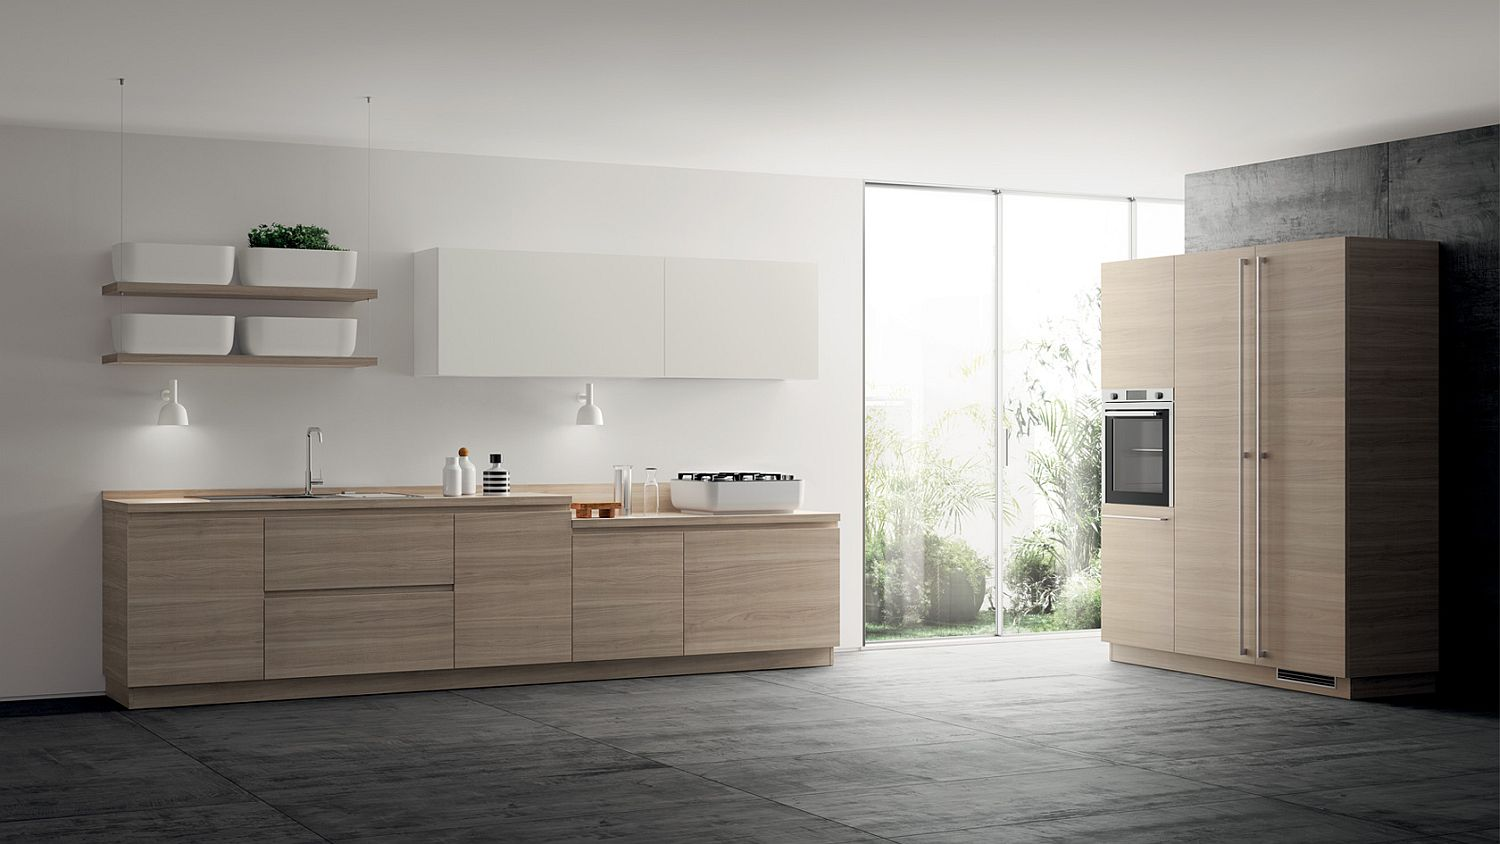 Custom task lighting adds to the minimal appeal of this stylish Scavolini kitchen